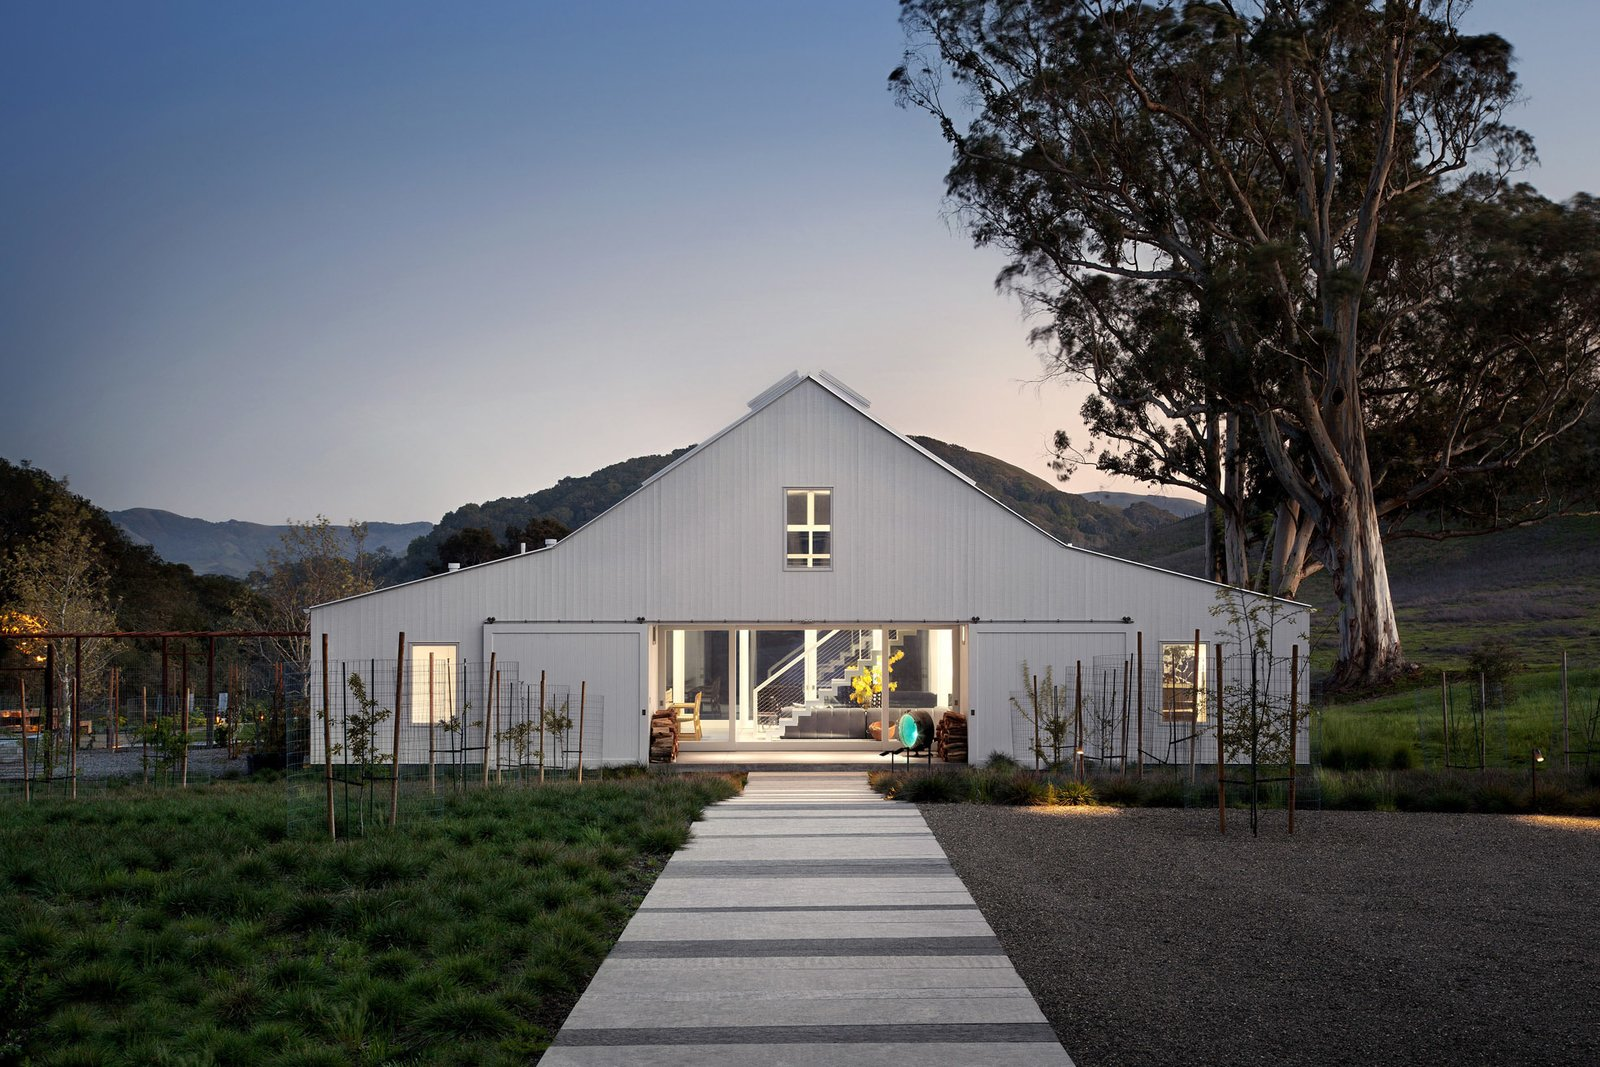 Western red cedar comprises the home's exterior siding, and AEP Span supplied the roofing material.  A LEED Platinum Family Home Takes the Place of an Abandoned California Farmhouse  by Kelly Dawson